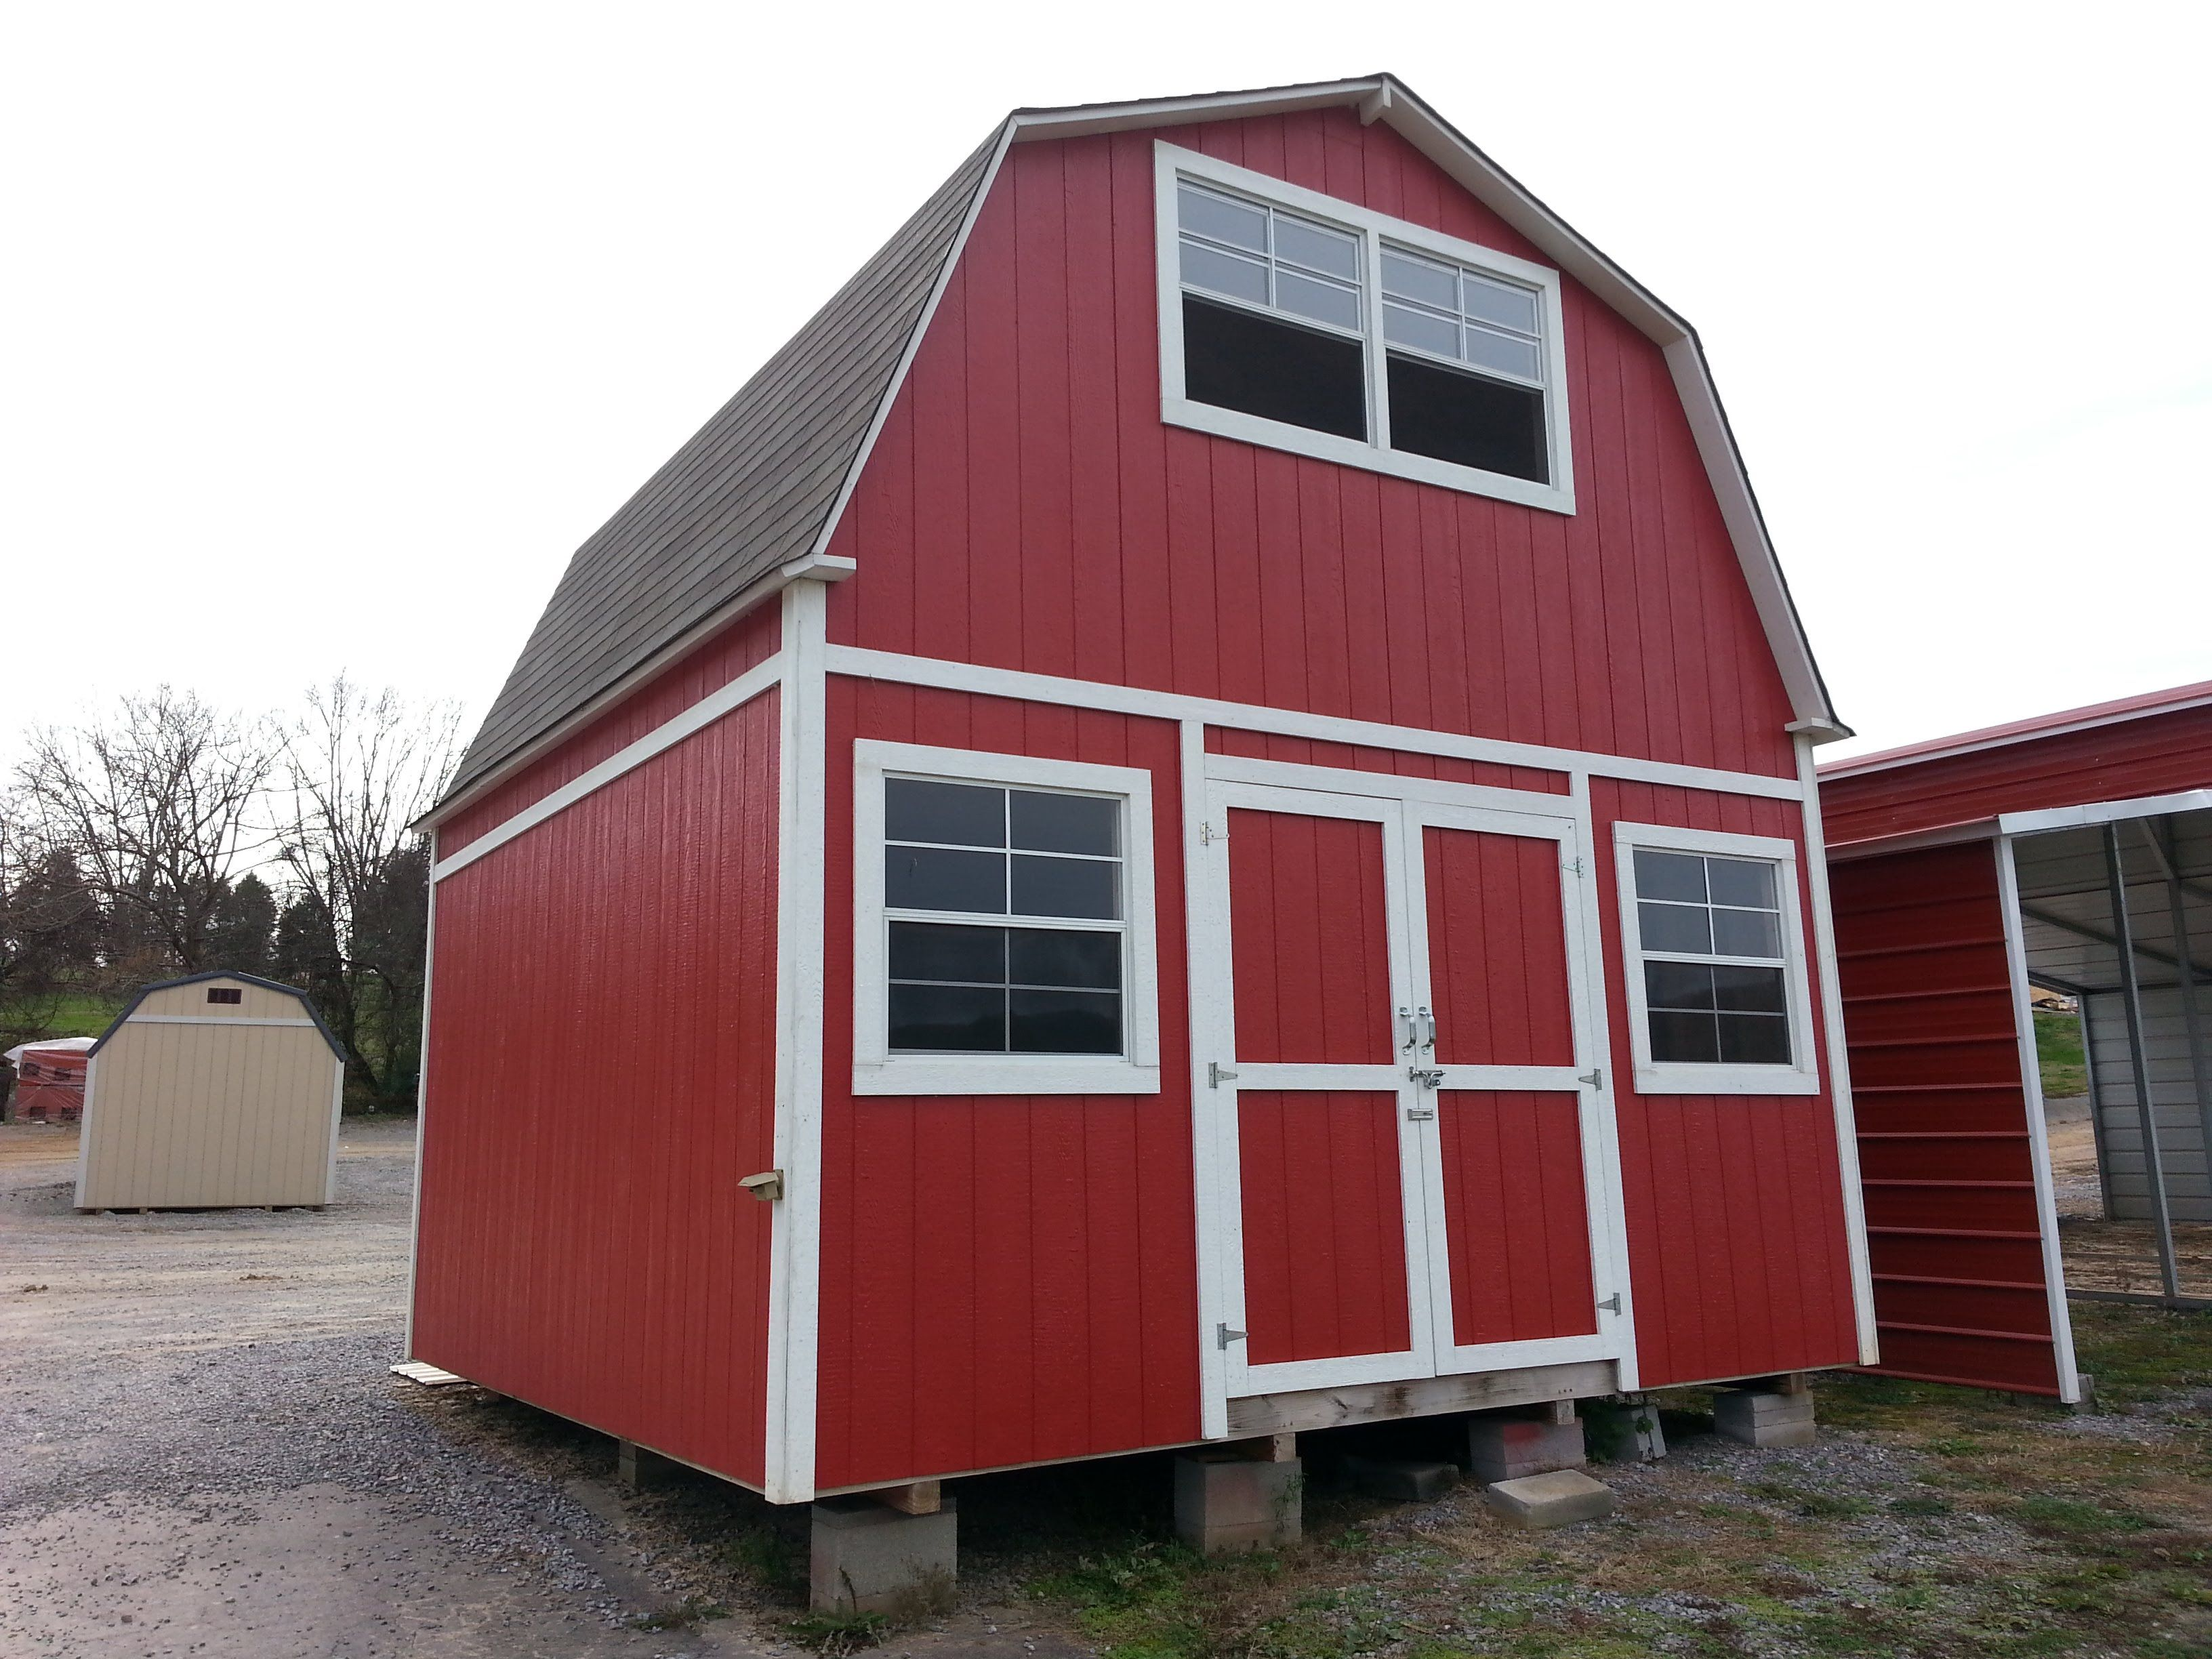 2 Story Tiny House 7 000 Mortgage Free Go Off Grid